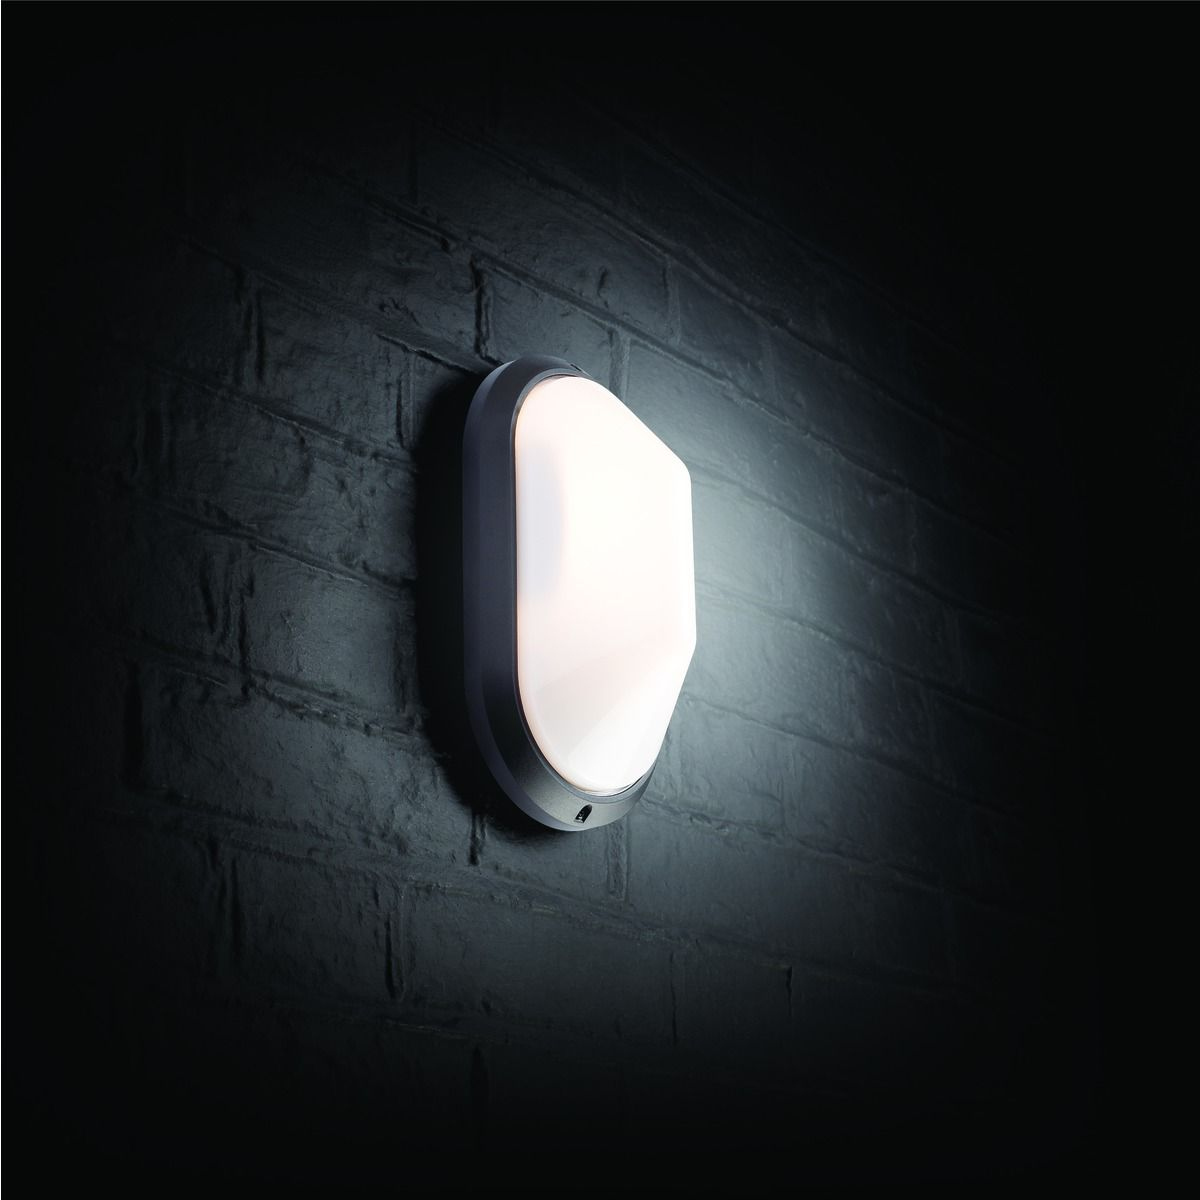 Wickes Garden Wall Lights : Wickes 60W Oval Bulkhead Black Wickes.co.uk